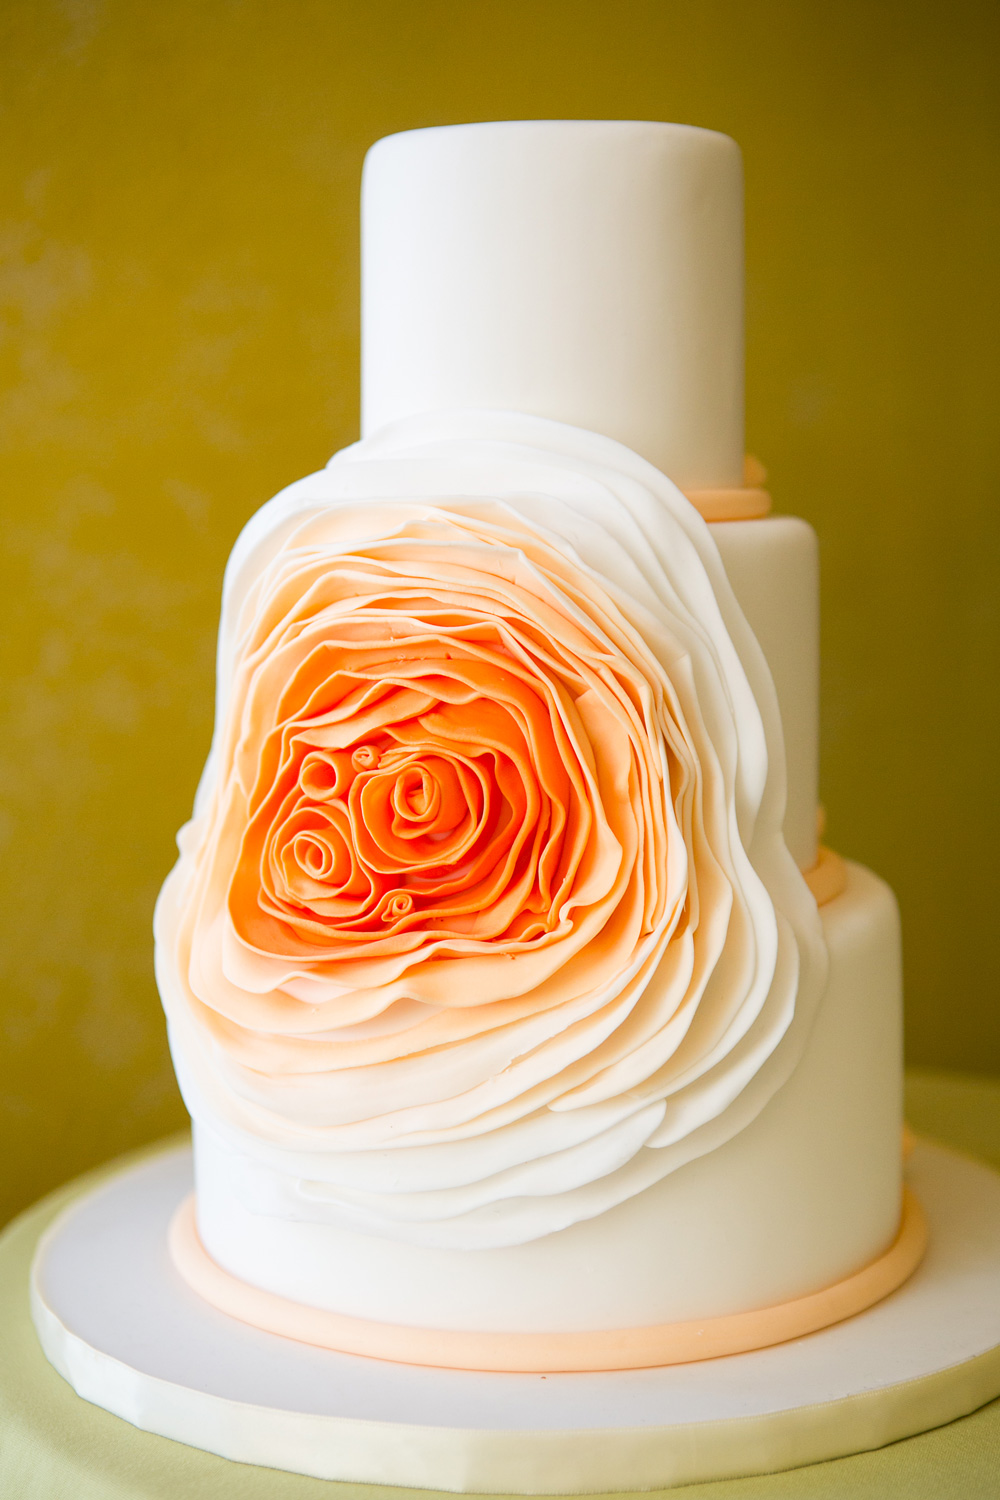 patisserie_angelica_fondant_sculpture.jpg